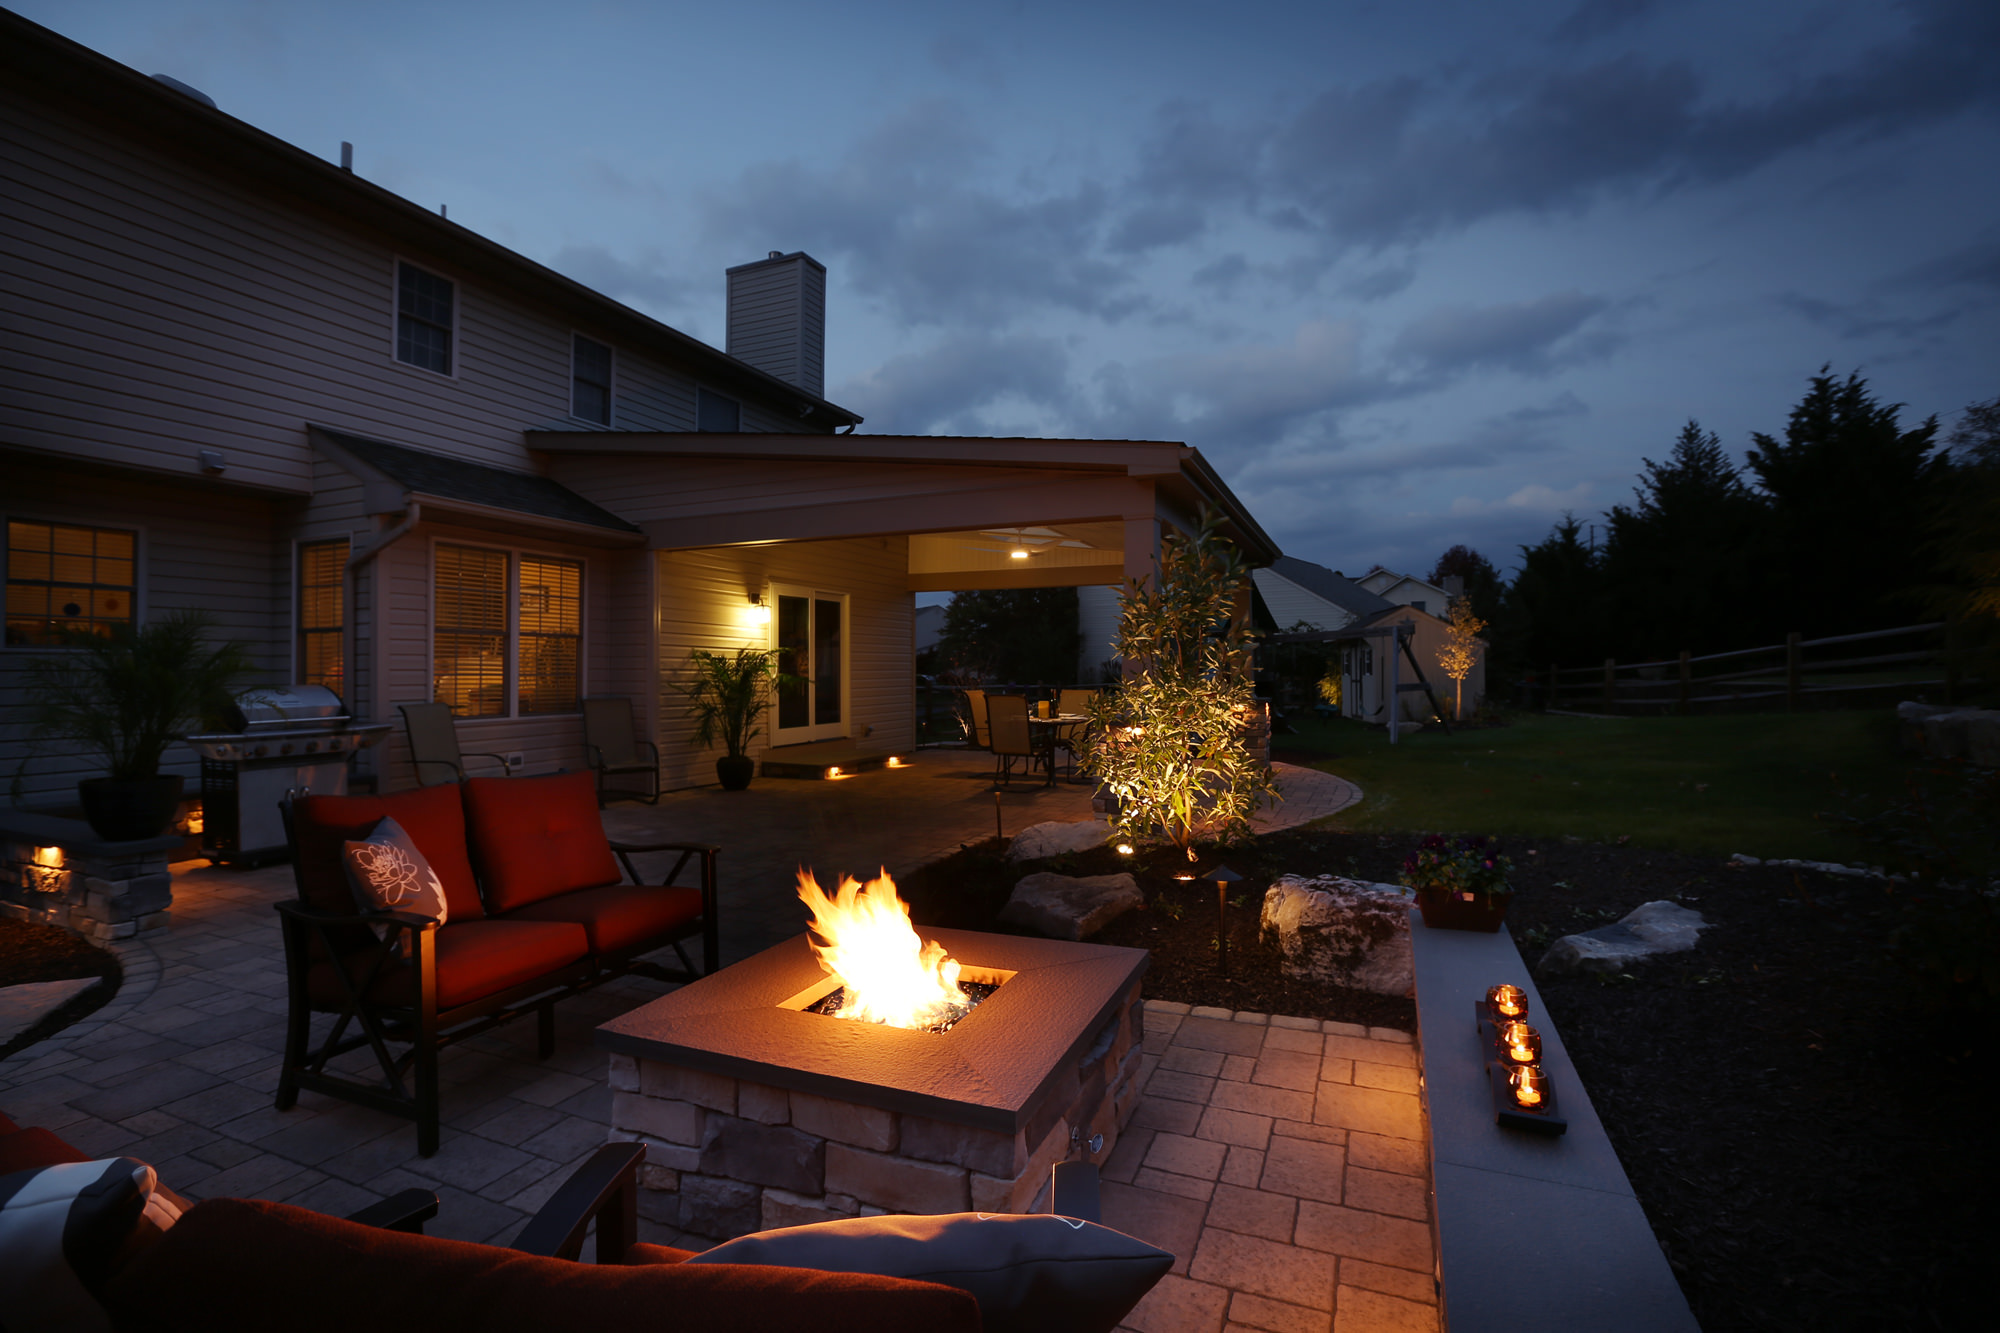 Can you picture your family gathering around this fire after the sun sets?